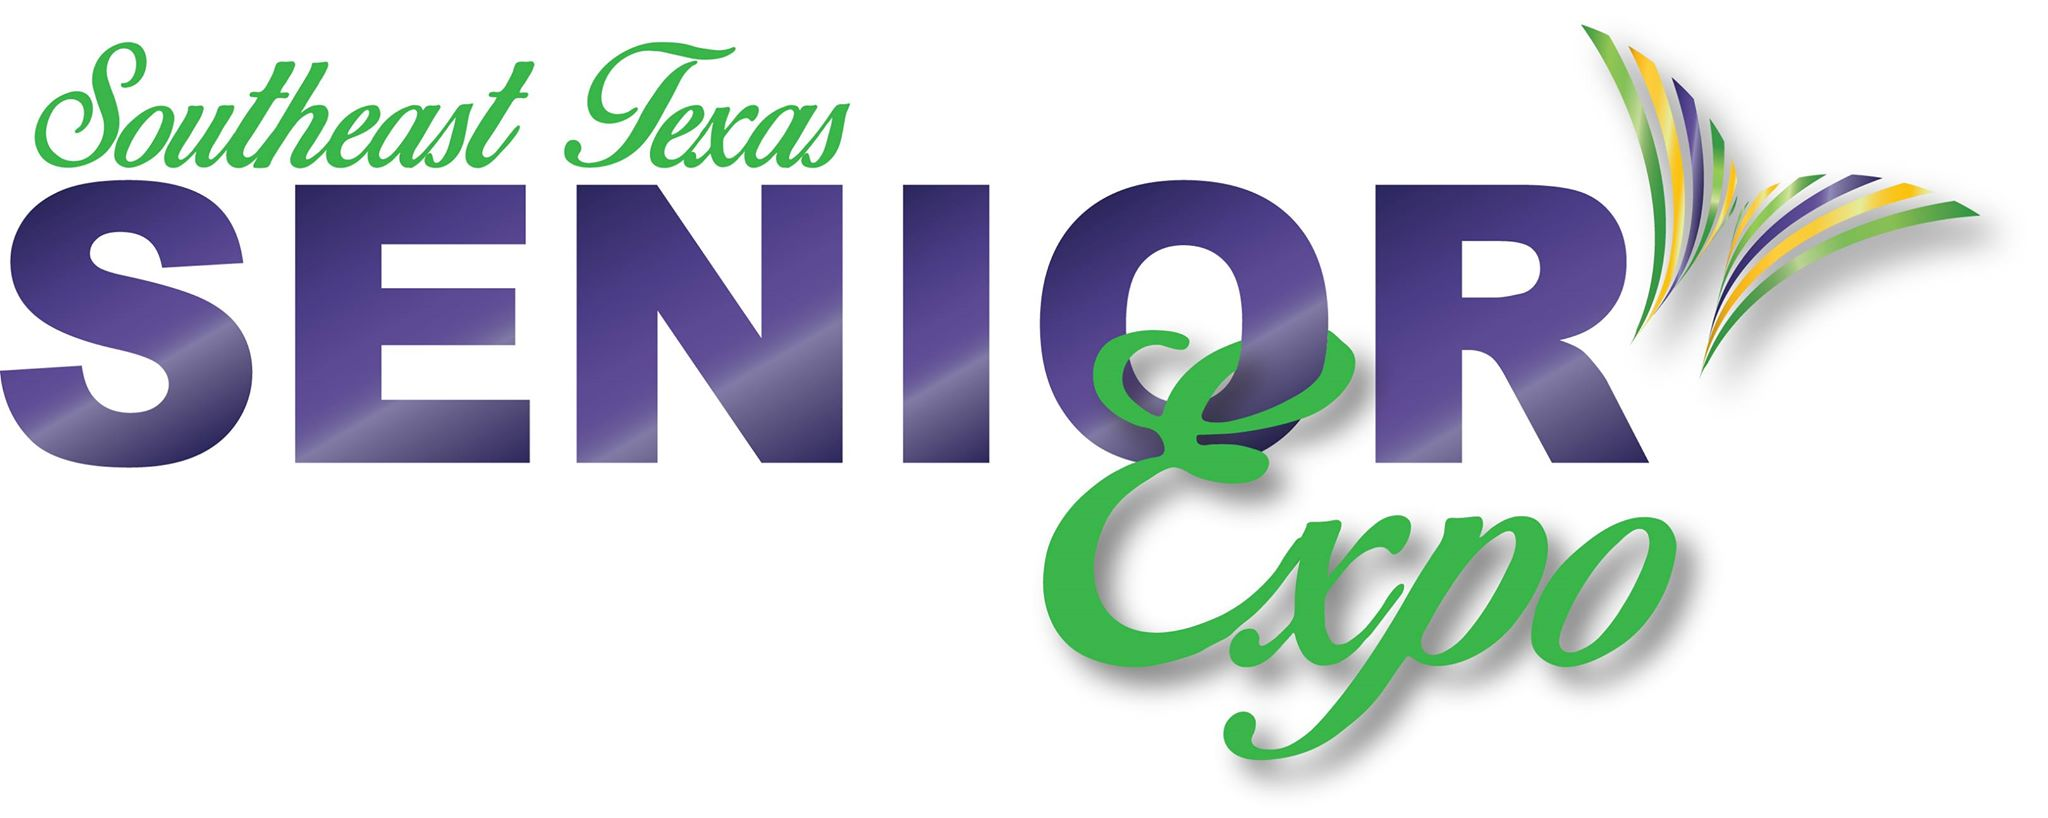 networking Southeast Texas, Senior Expo East Texas, Senior Expo Southeast Texas, Senior Expo Texas, Senior Expo Houston, Senior Expo Lufkin, Senior events Jasper TX